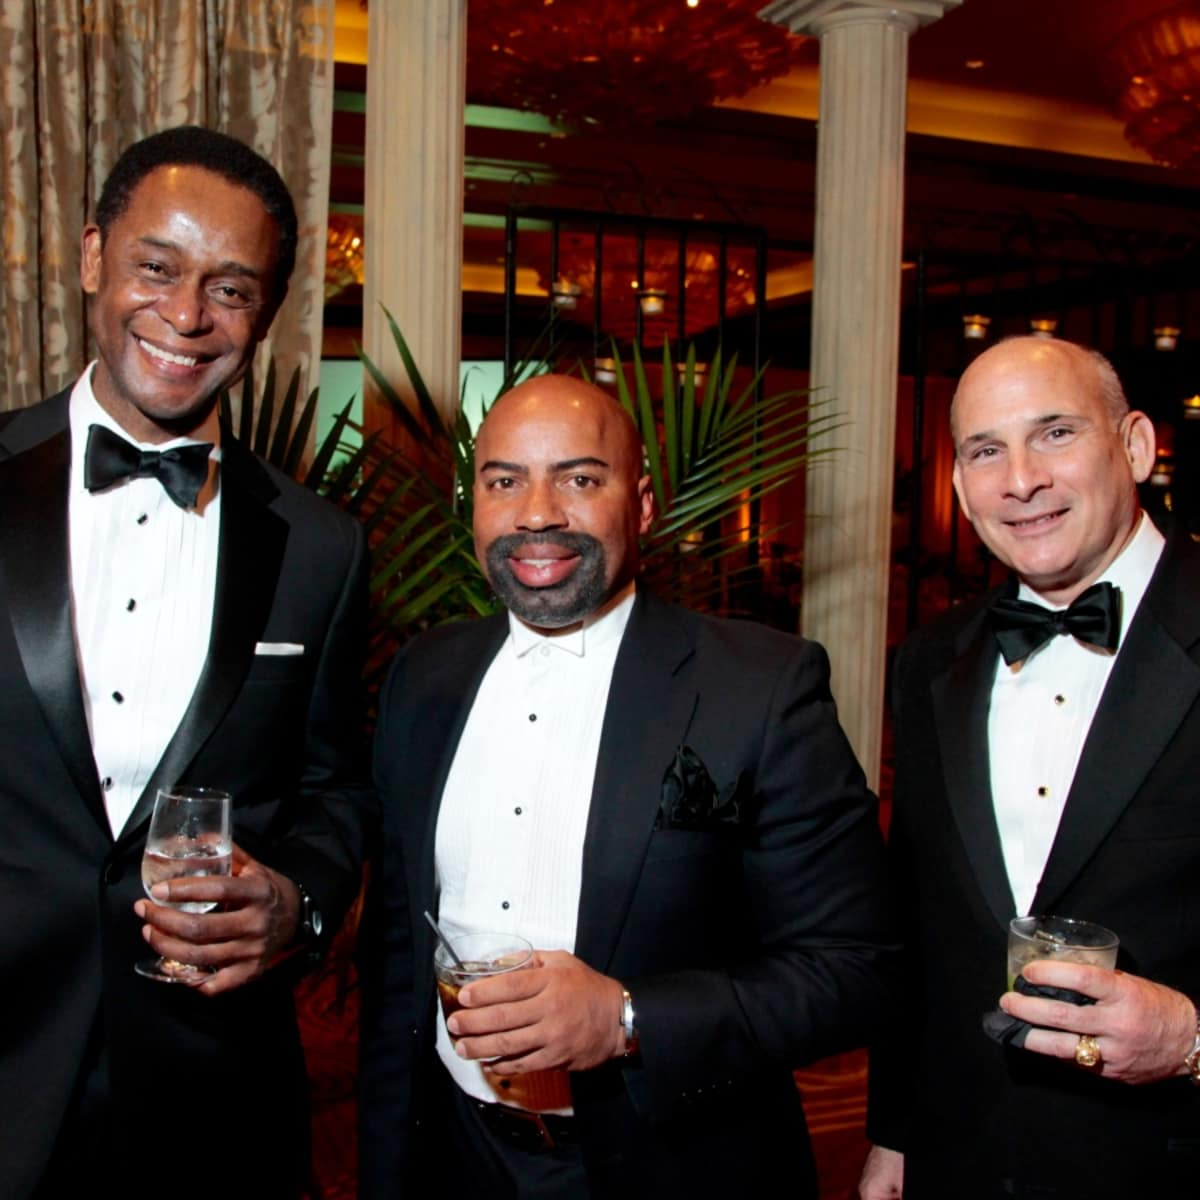 Houston, West University Park Lovers' Ball, February 2018, Charles Williams, Ron Stewart, Chris Harris